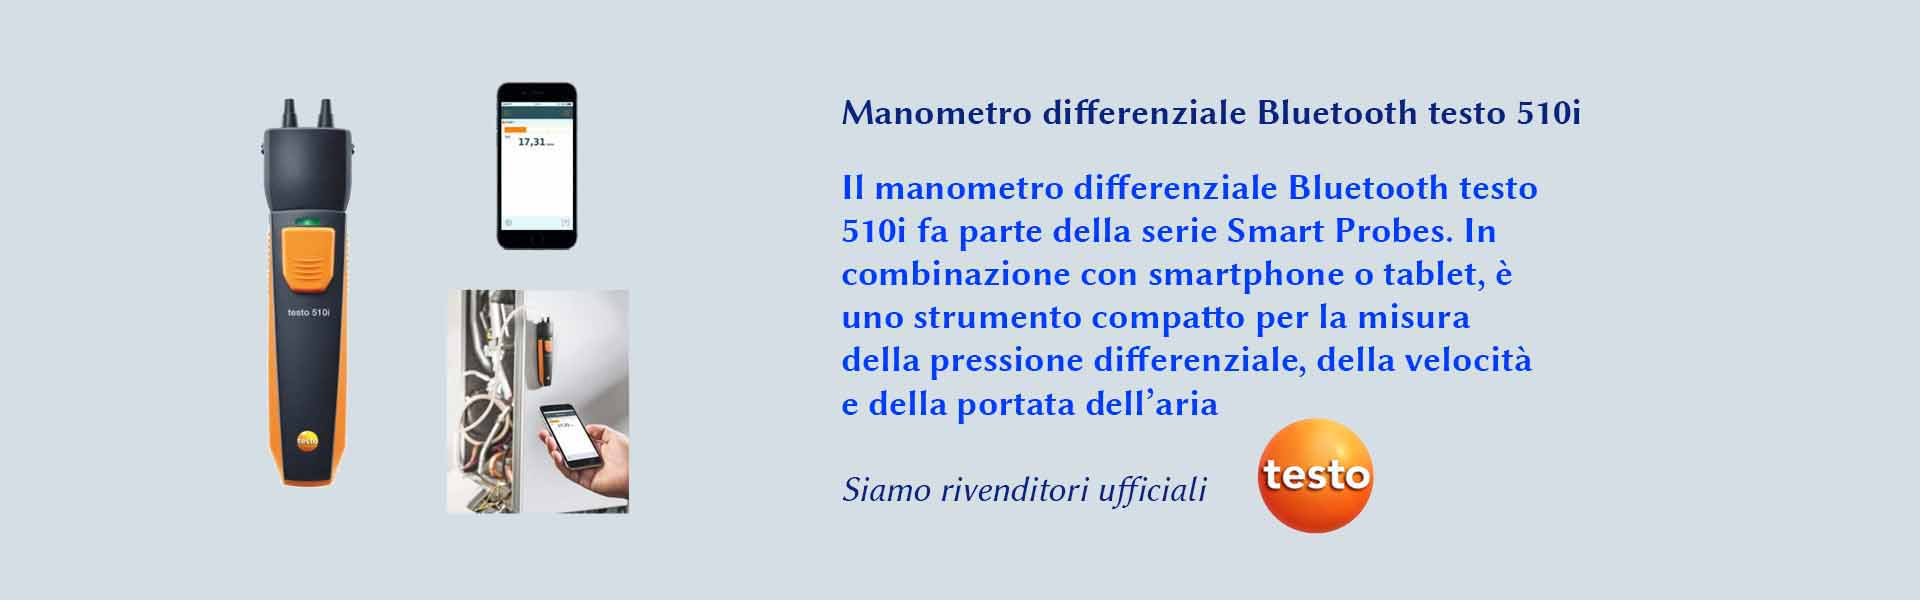 manometro differenziale bluethooth testo 510i della serie Smart Probes